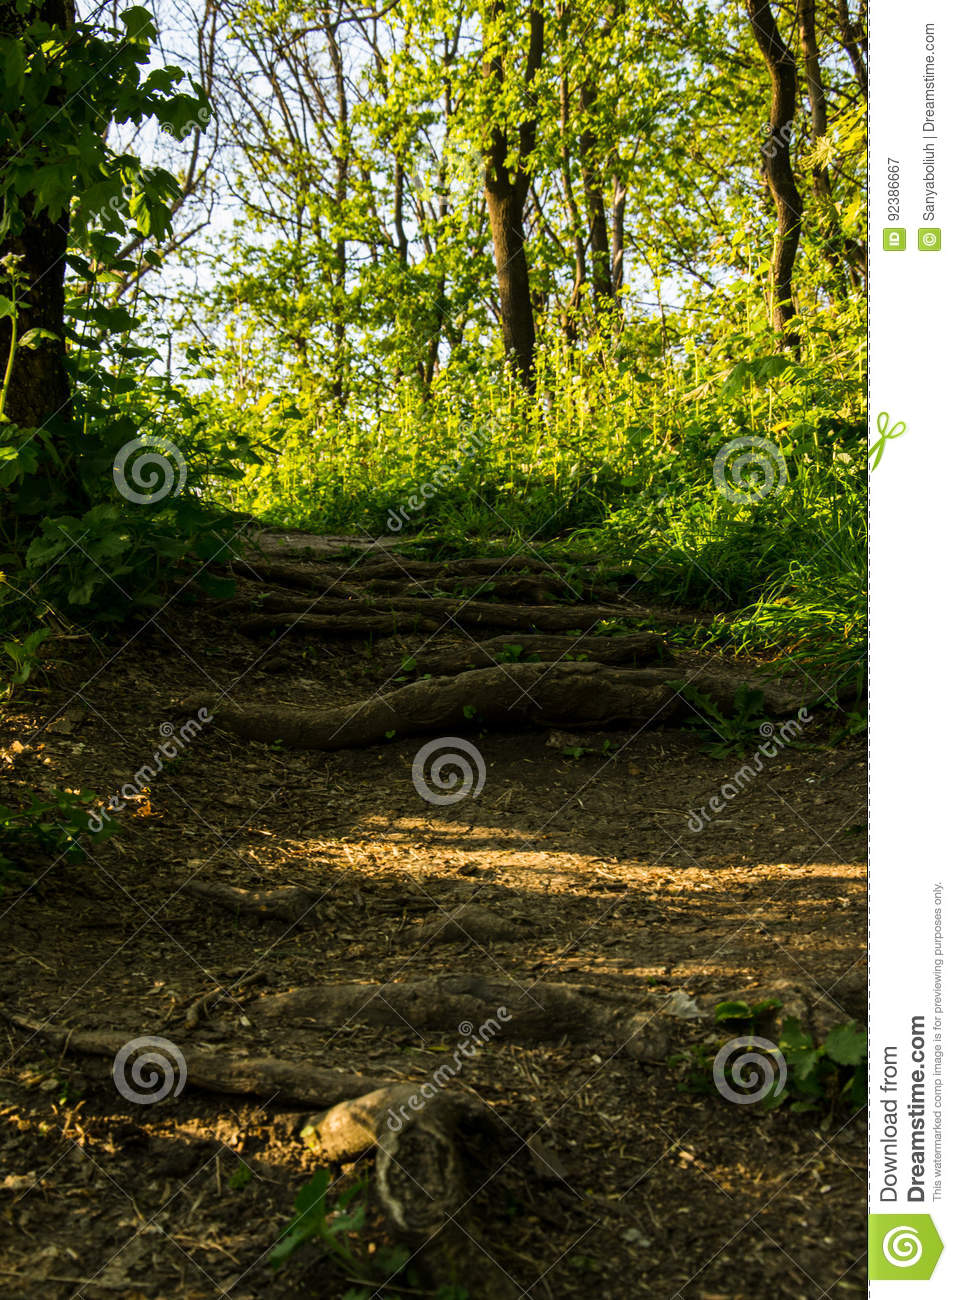 Macro Image Of The Ground Of A Forest  The Dry Beech Leaf In The